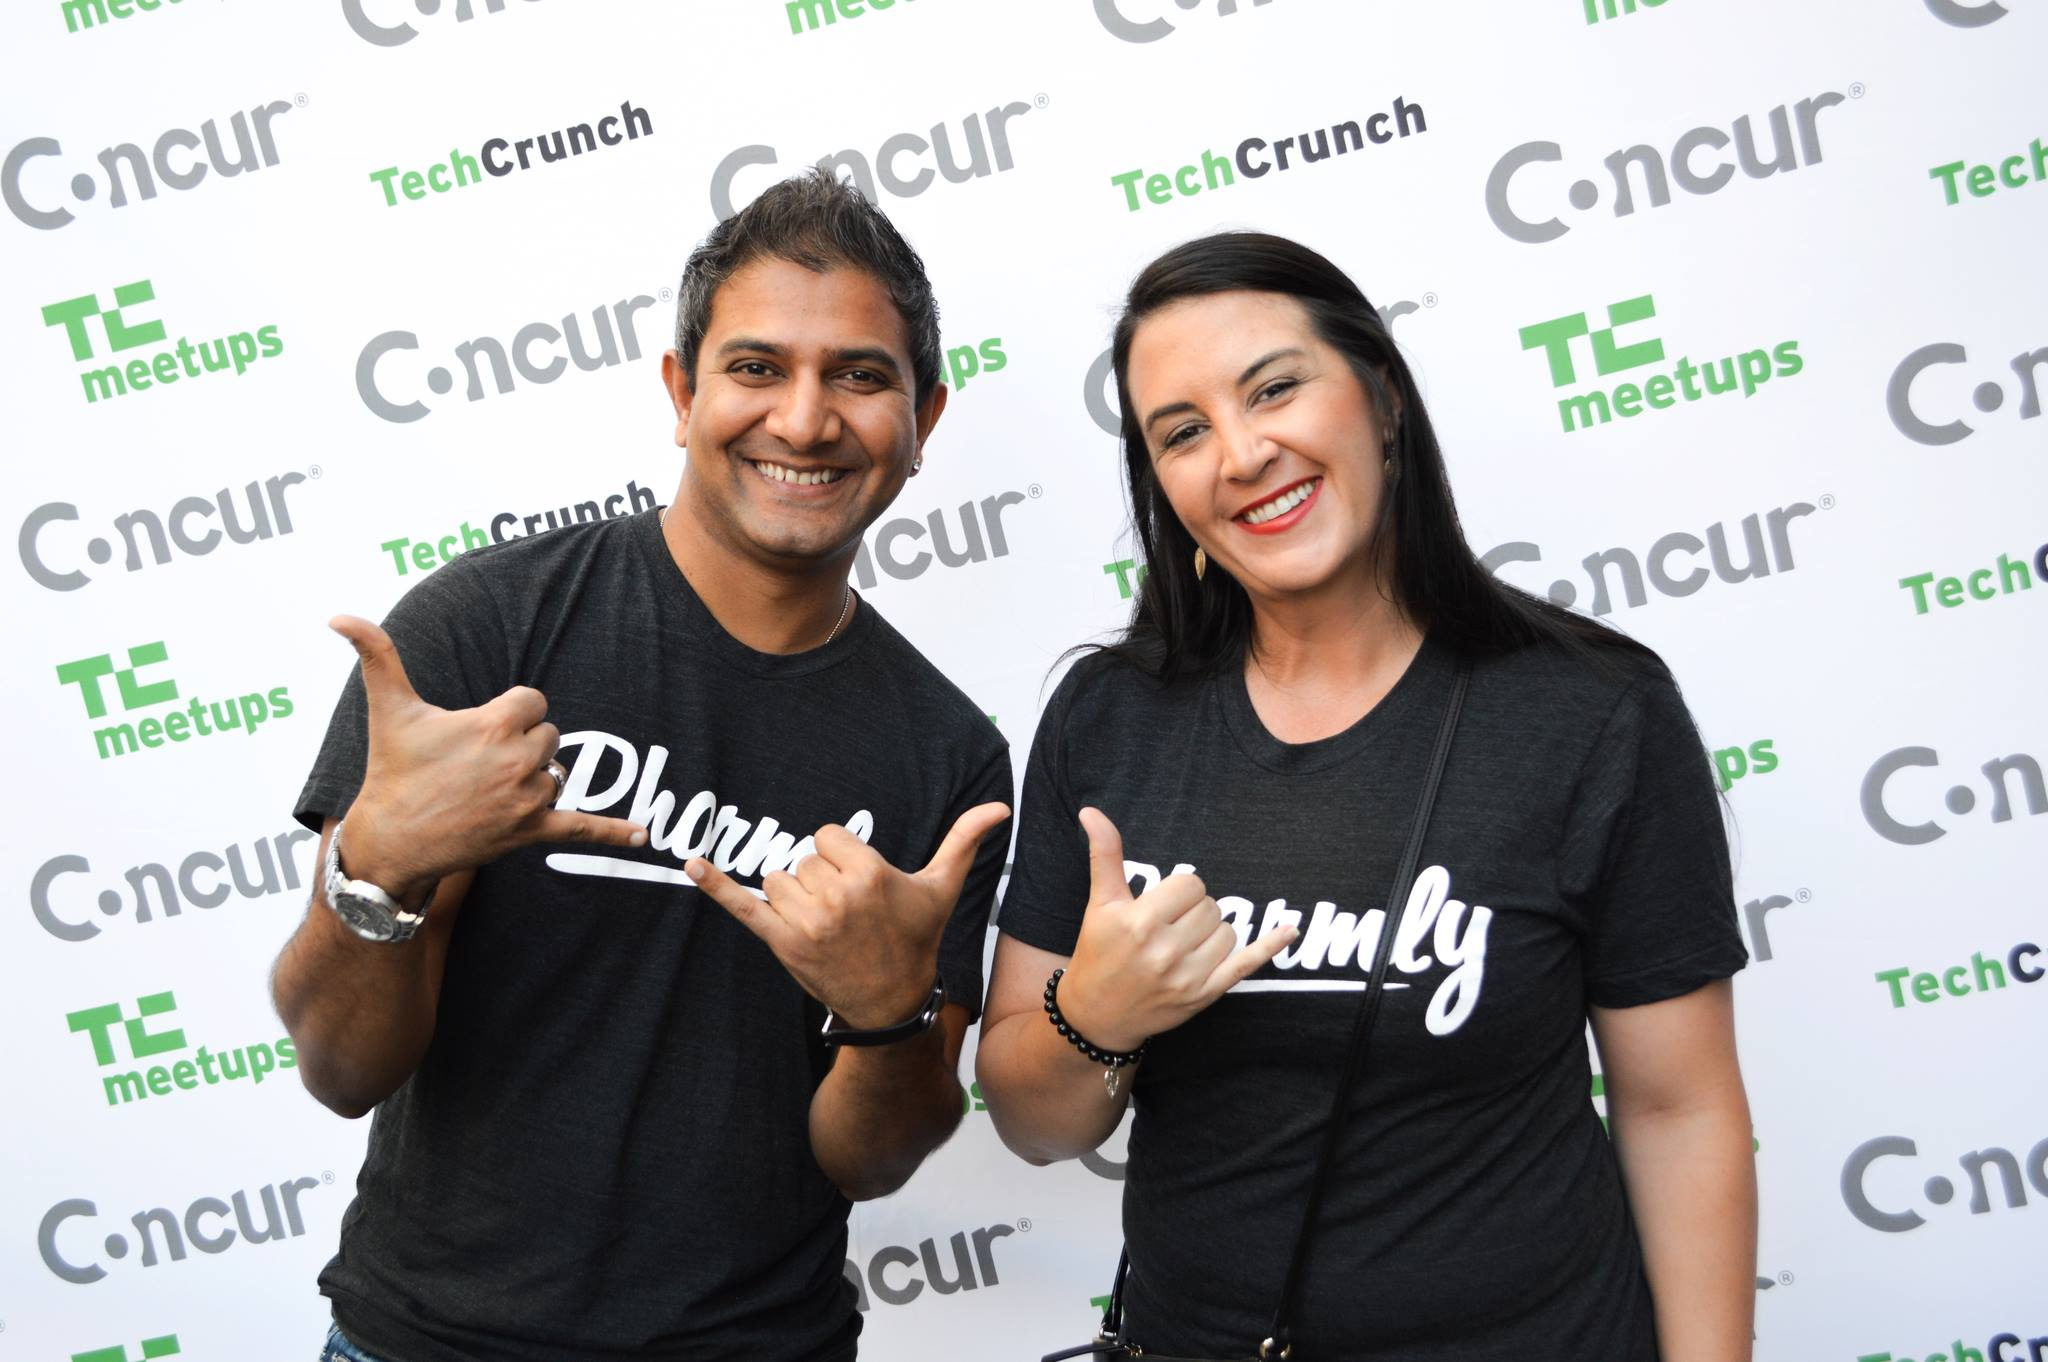 San Diego based Pharmly wins TechCrunch San Diego Disrupt